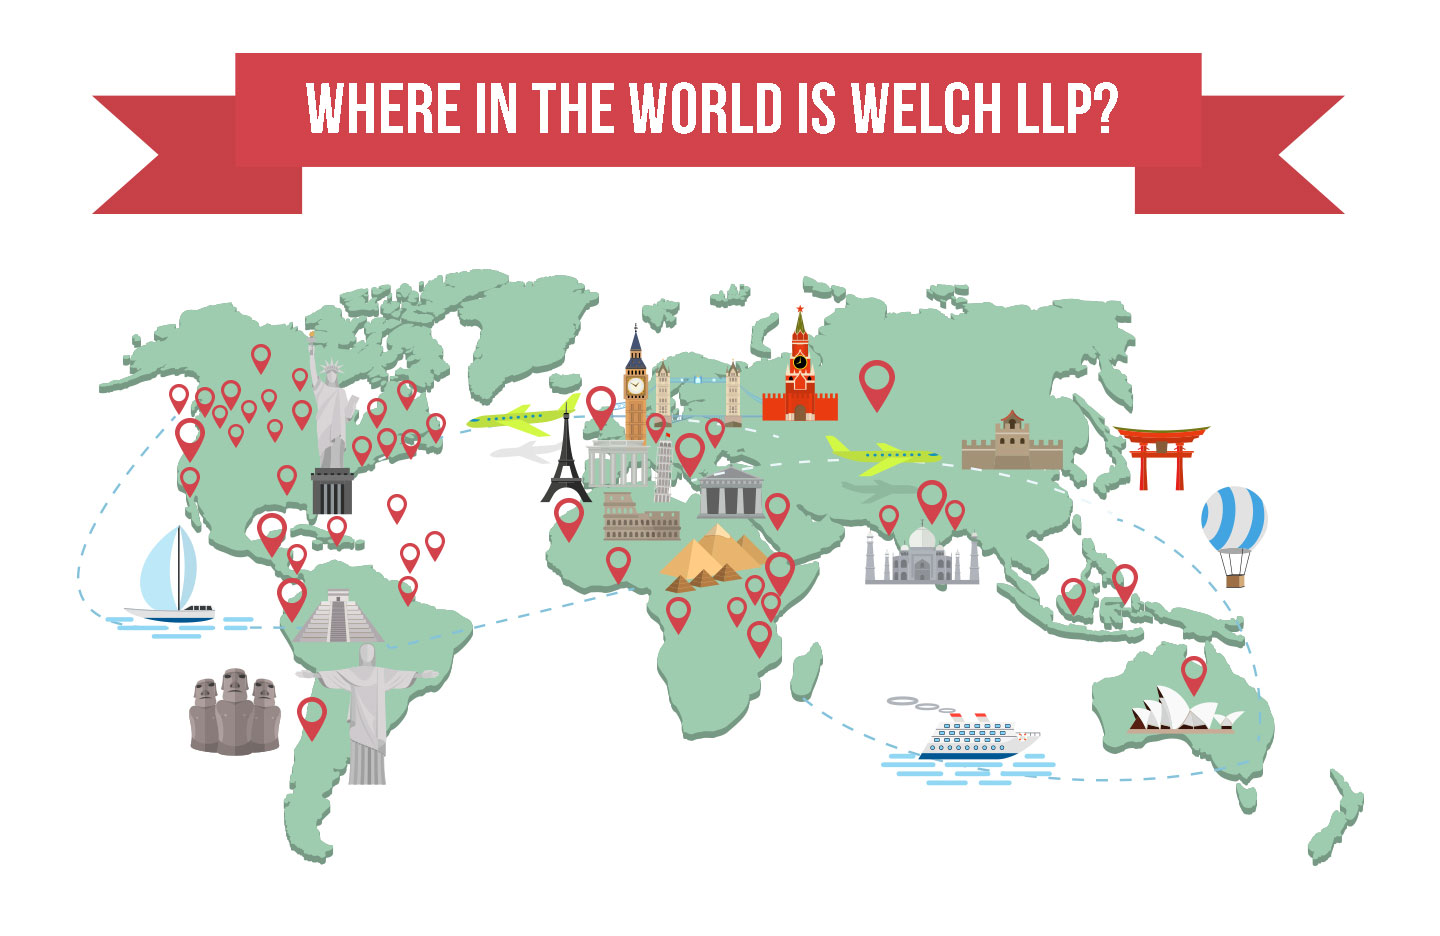 Where in the world is Welch LLP?